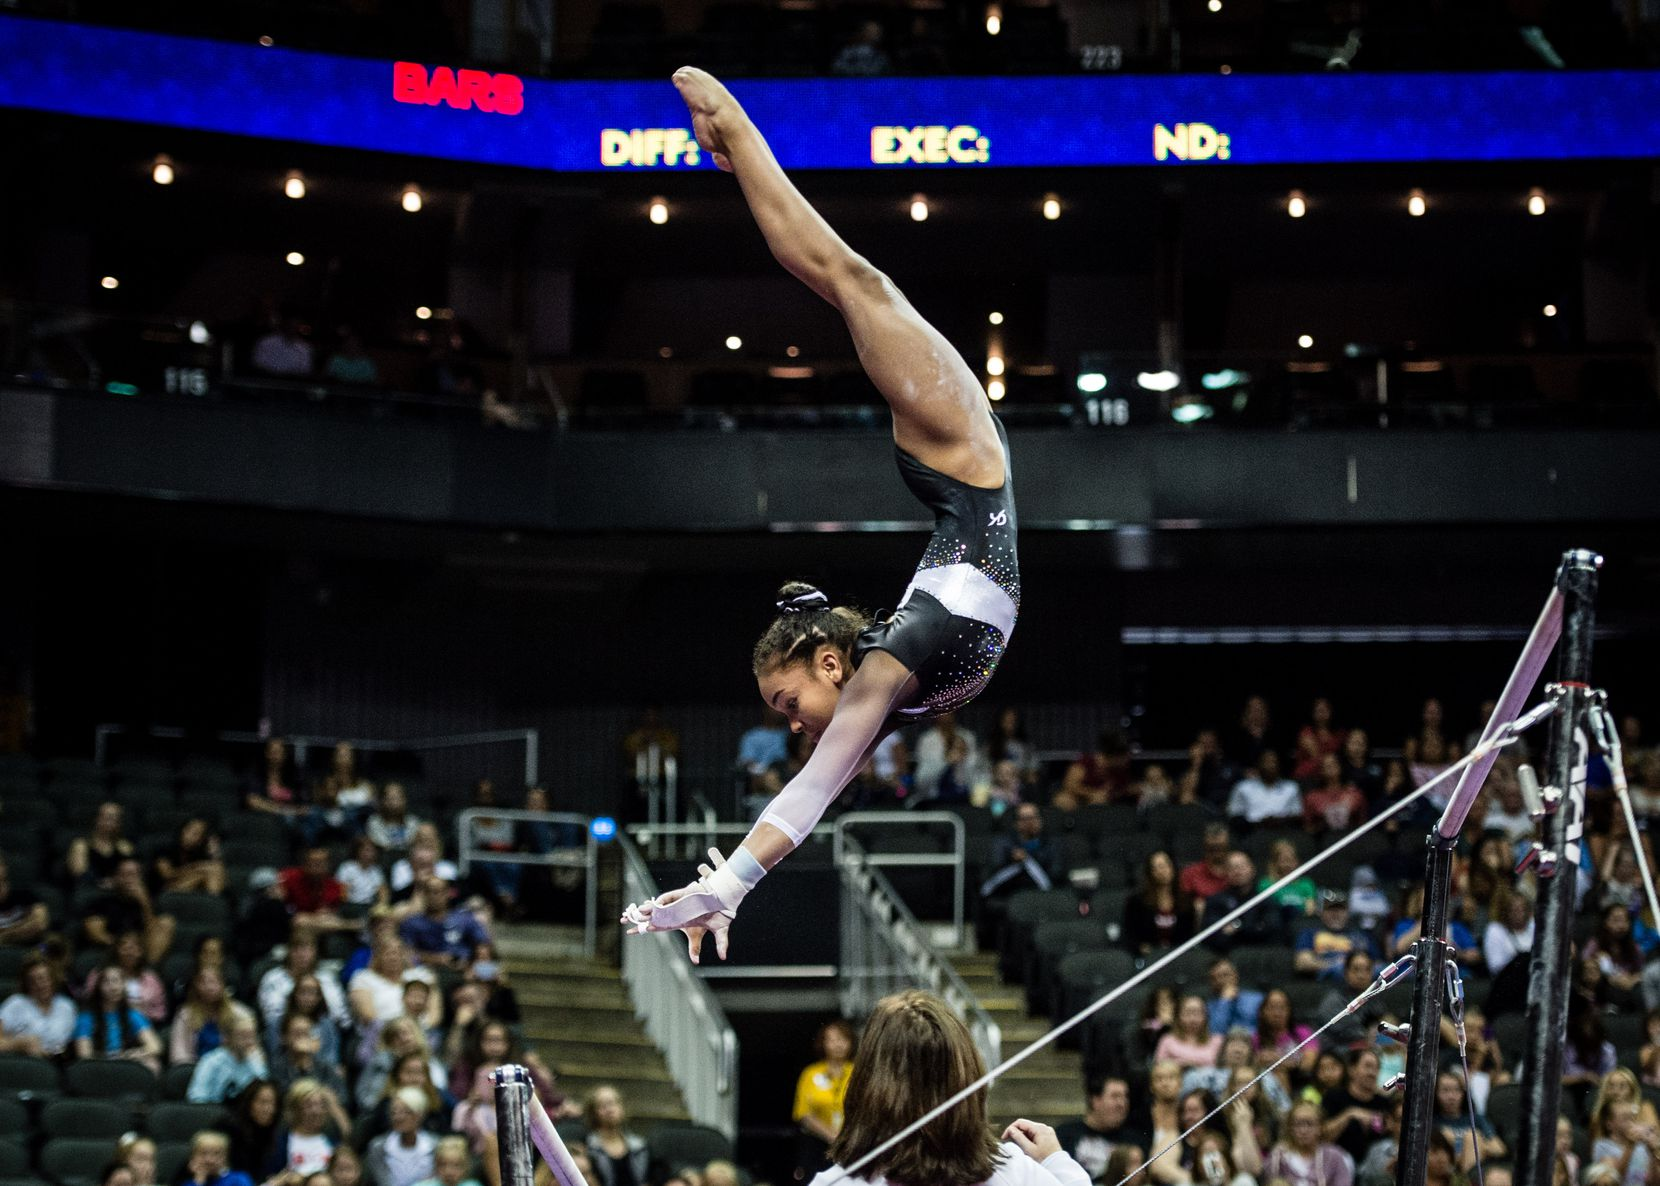 Konnor McClain, who recently moved to Texas to train at WOGA under Valeri Liukin, competes at the 2019 U.S. Championships. Konnor McClain (Revolution)